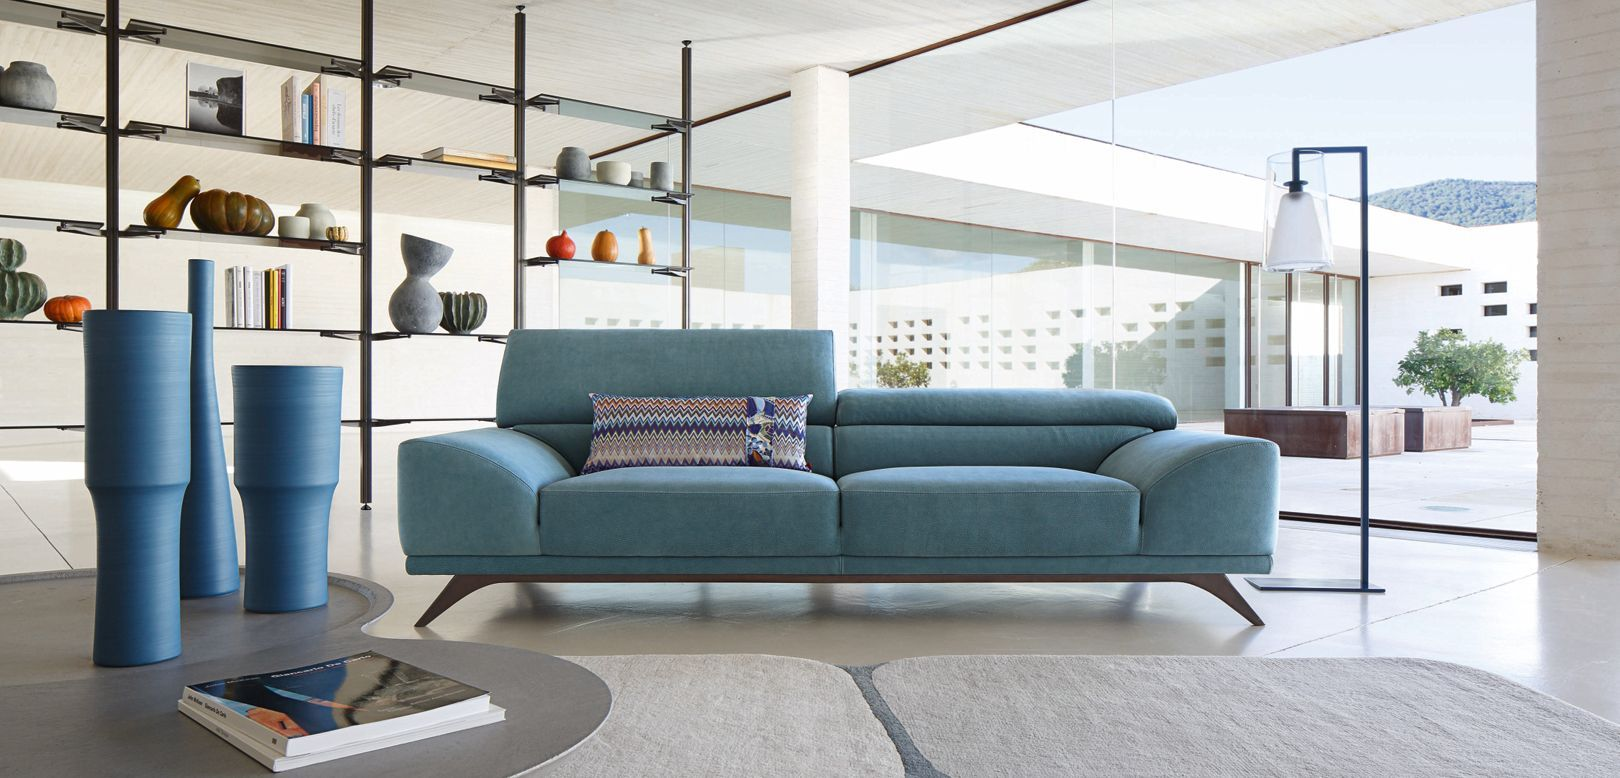 This sofa looks amazing roche bobois huge three seats for Coussin sofa exterieur